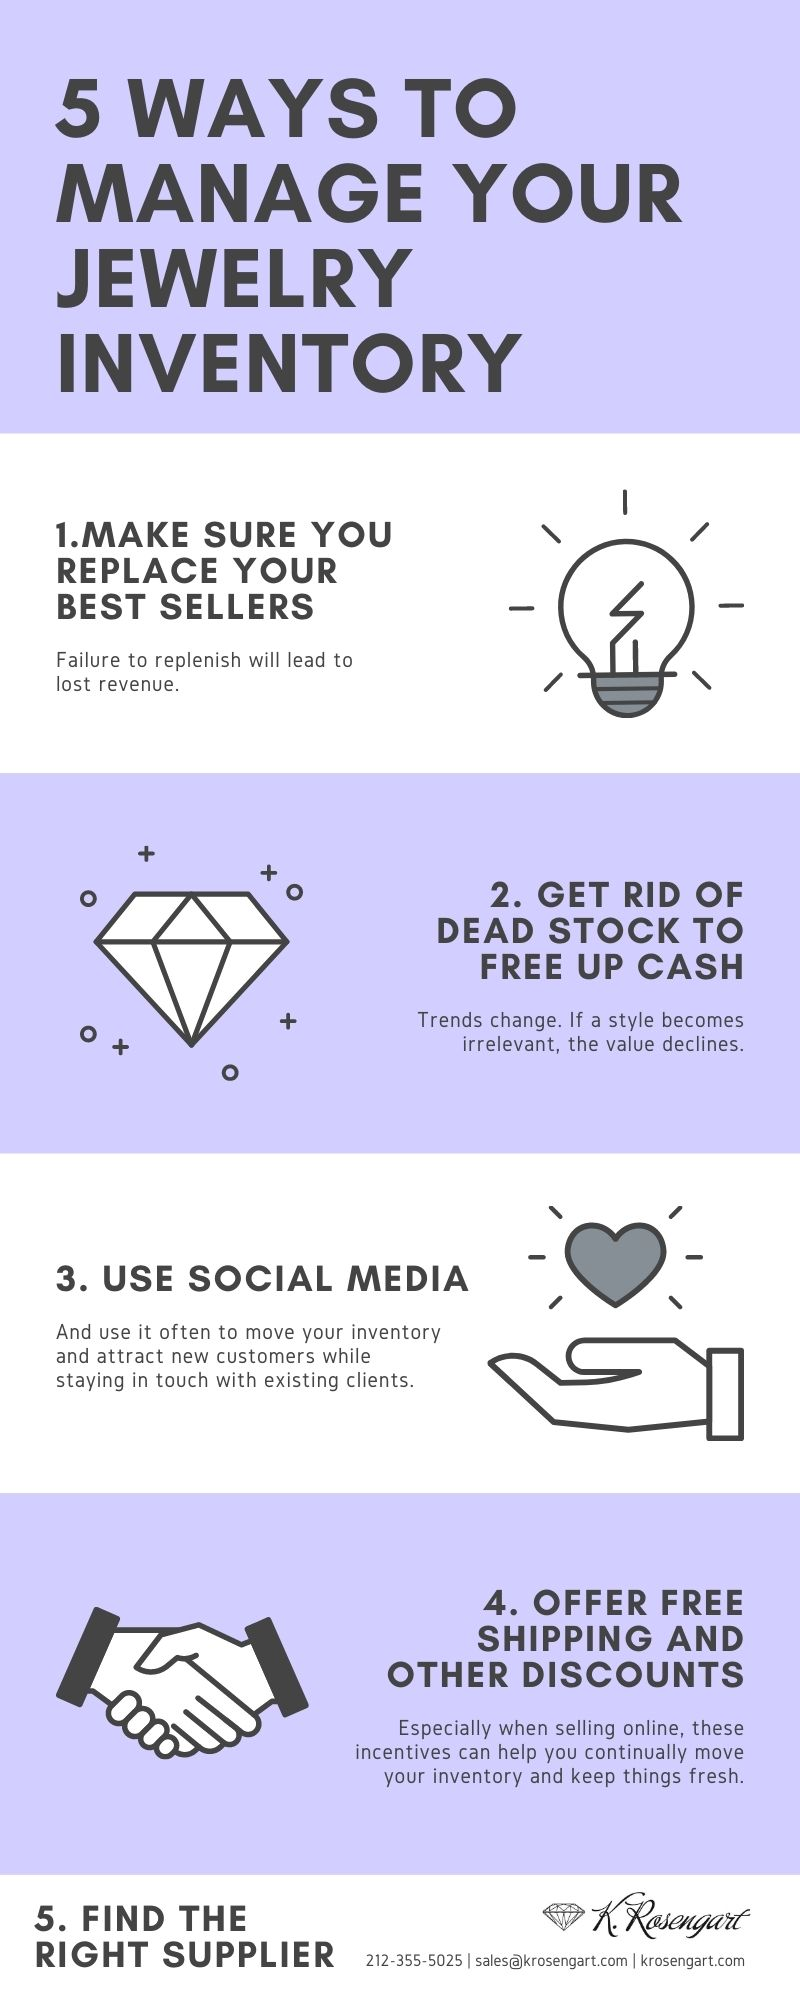 5 Ways to Manage Your Jewelry Inventory | Infographic | K. Rosengart